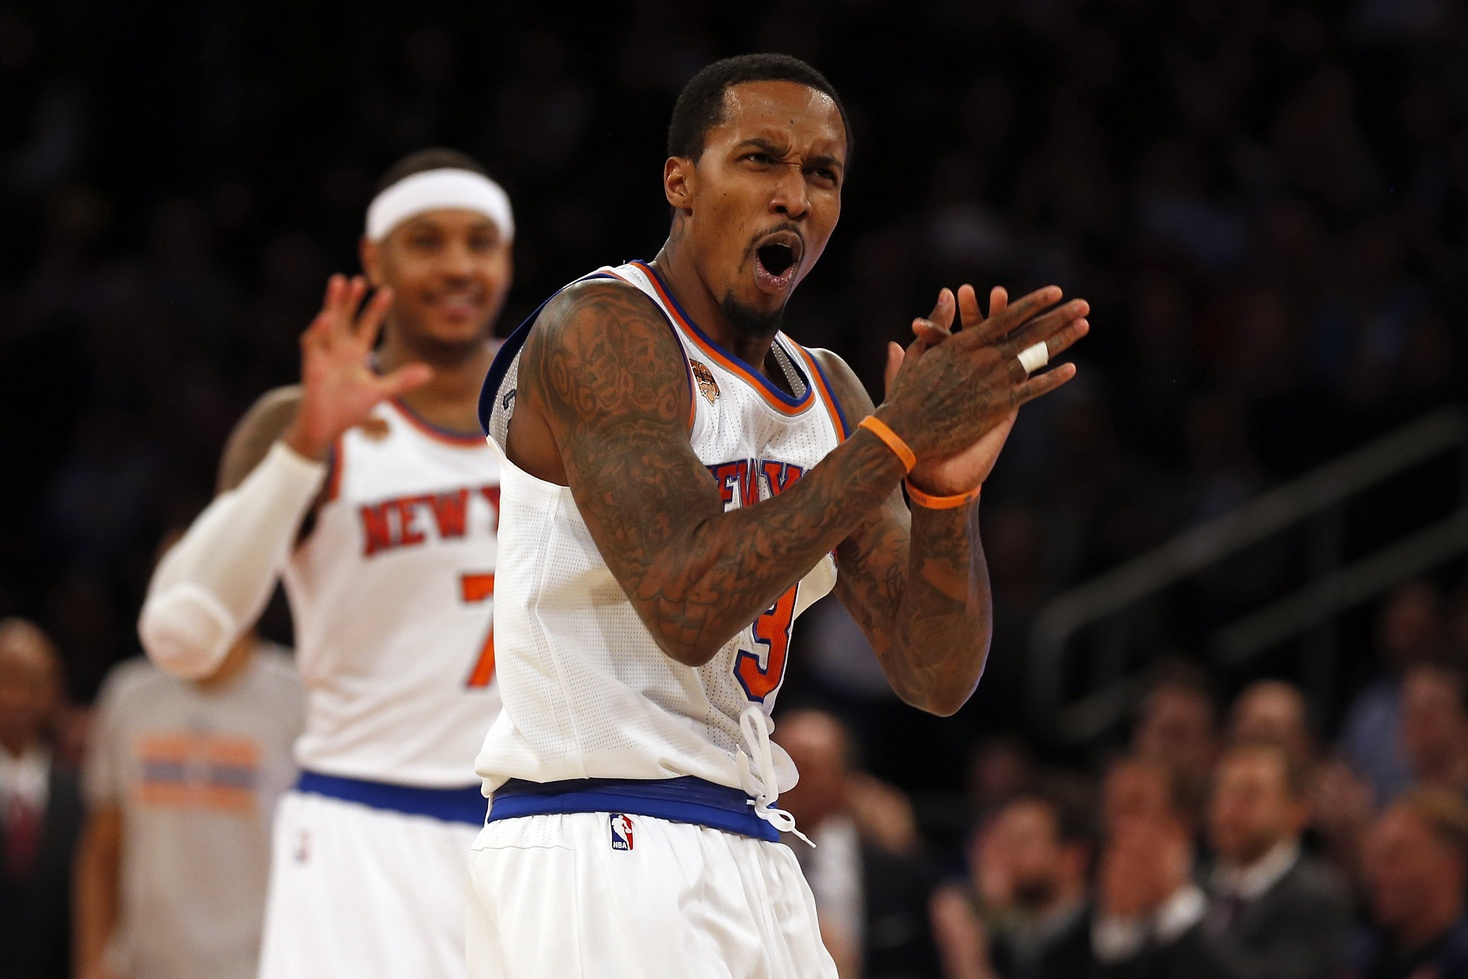 New York Knicks: Brandon Jennings has accepted his new role